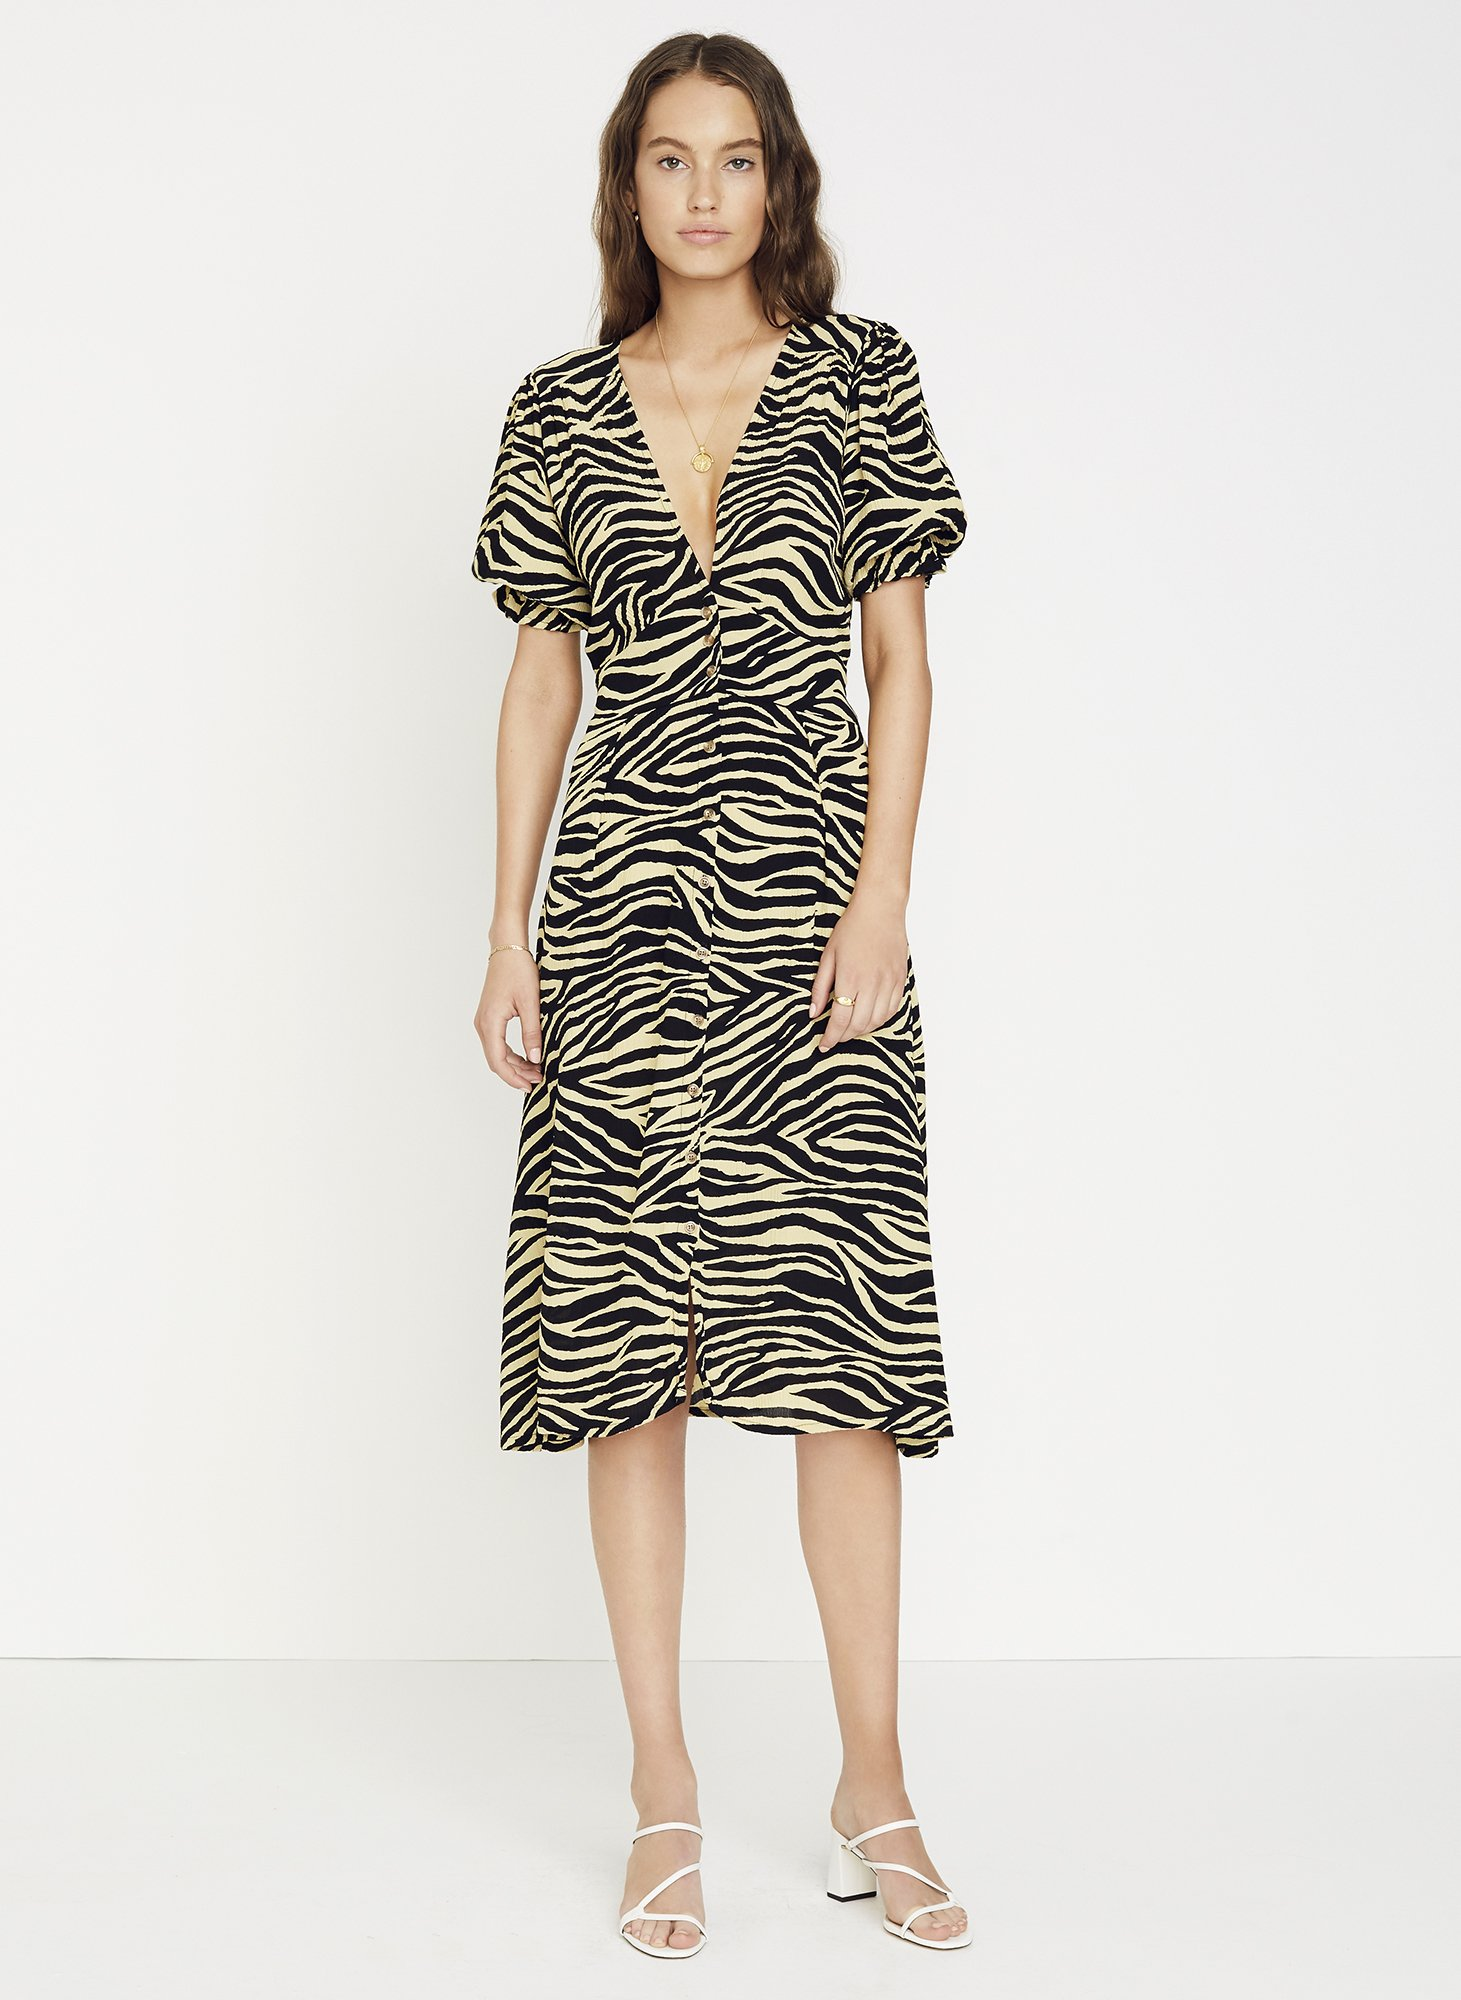 Faithfull the Brand - Amaia Zebra Print – Rafa Midi Dress / $199.00Although Faithfull the Brand is the holy mecca for perfect floral dresses, this zebra print midi stood out as a must-have.